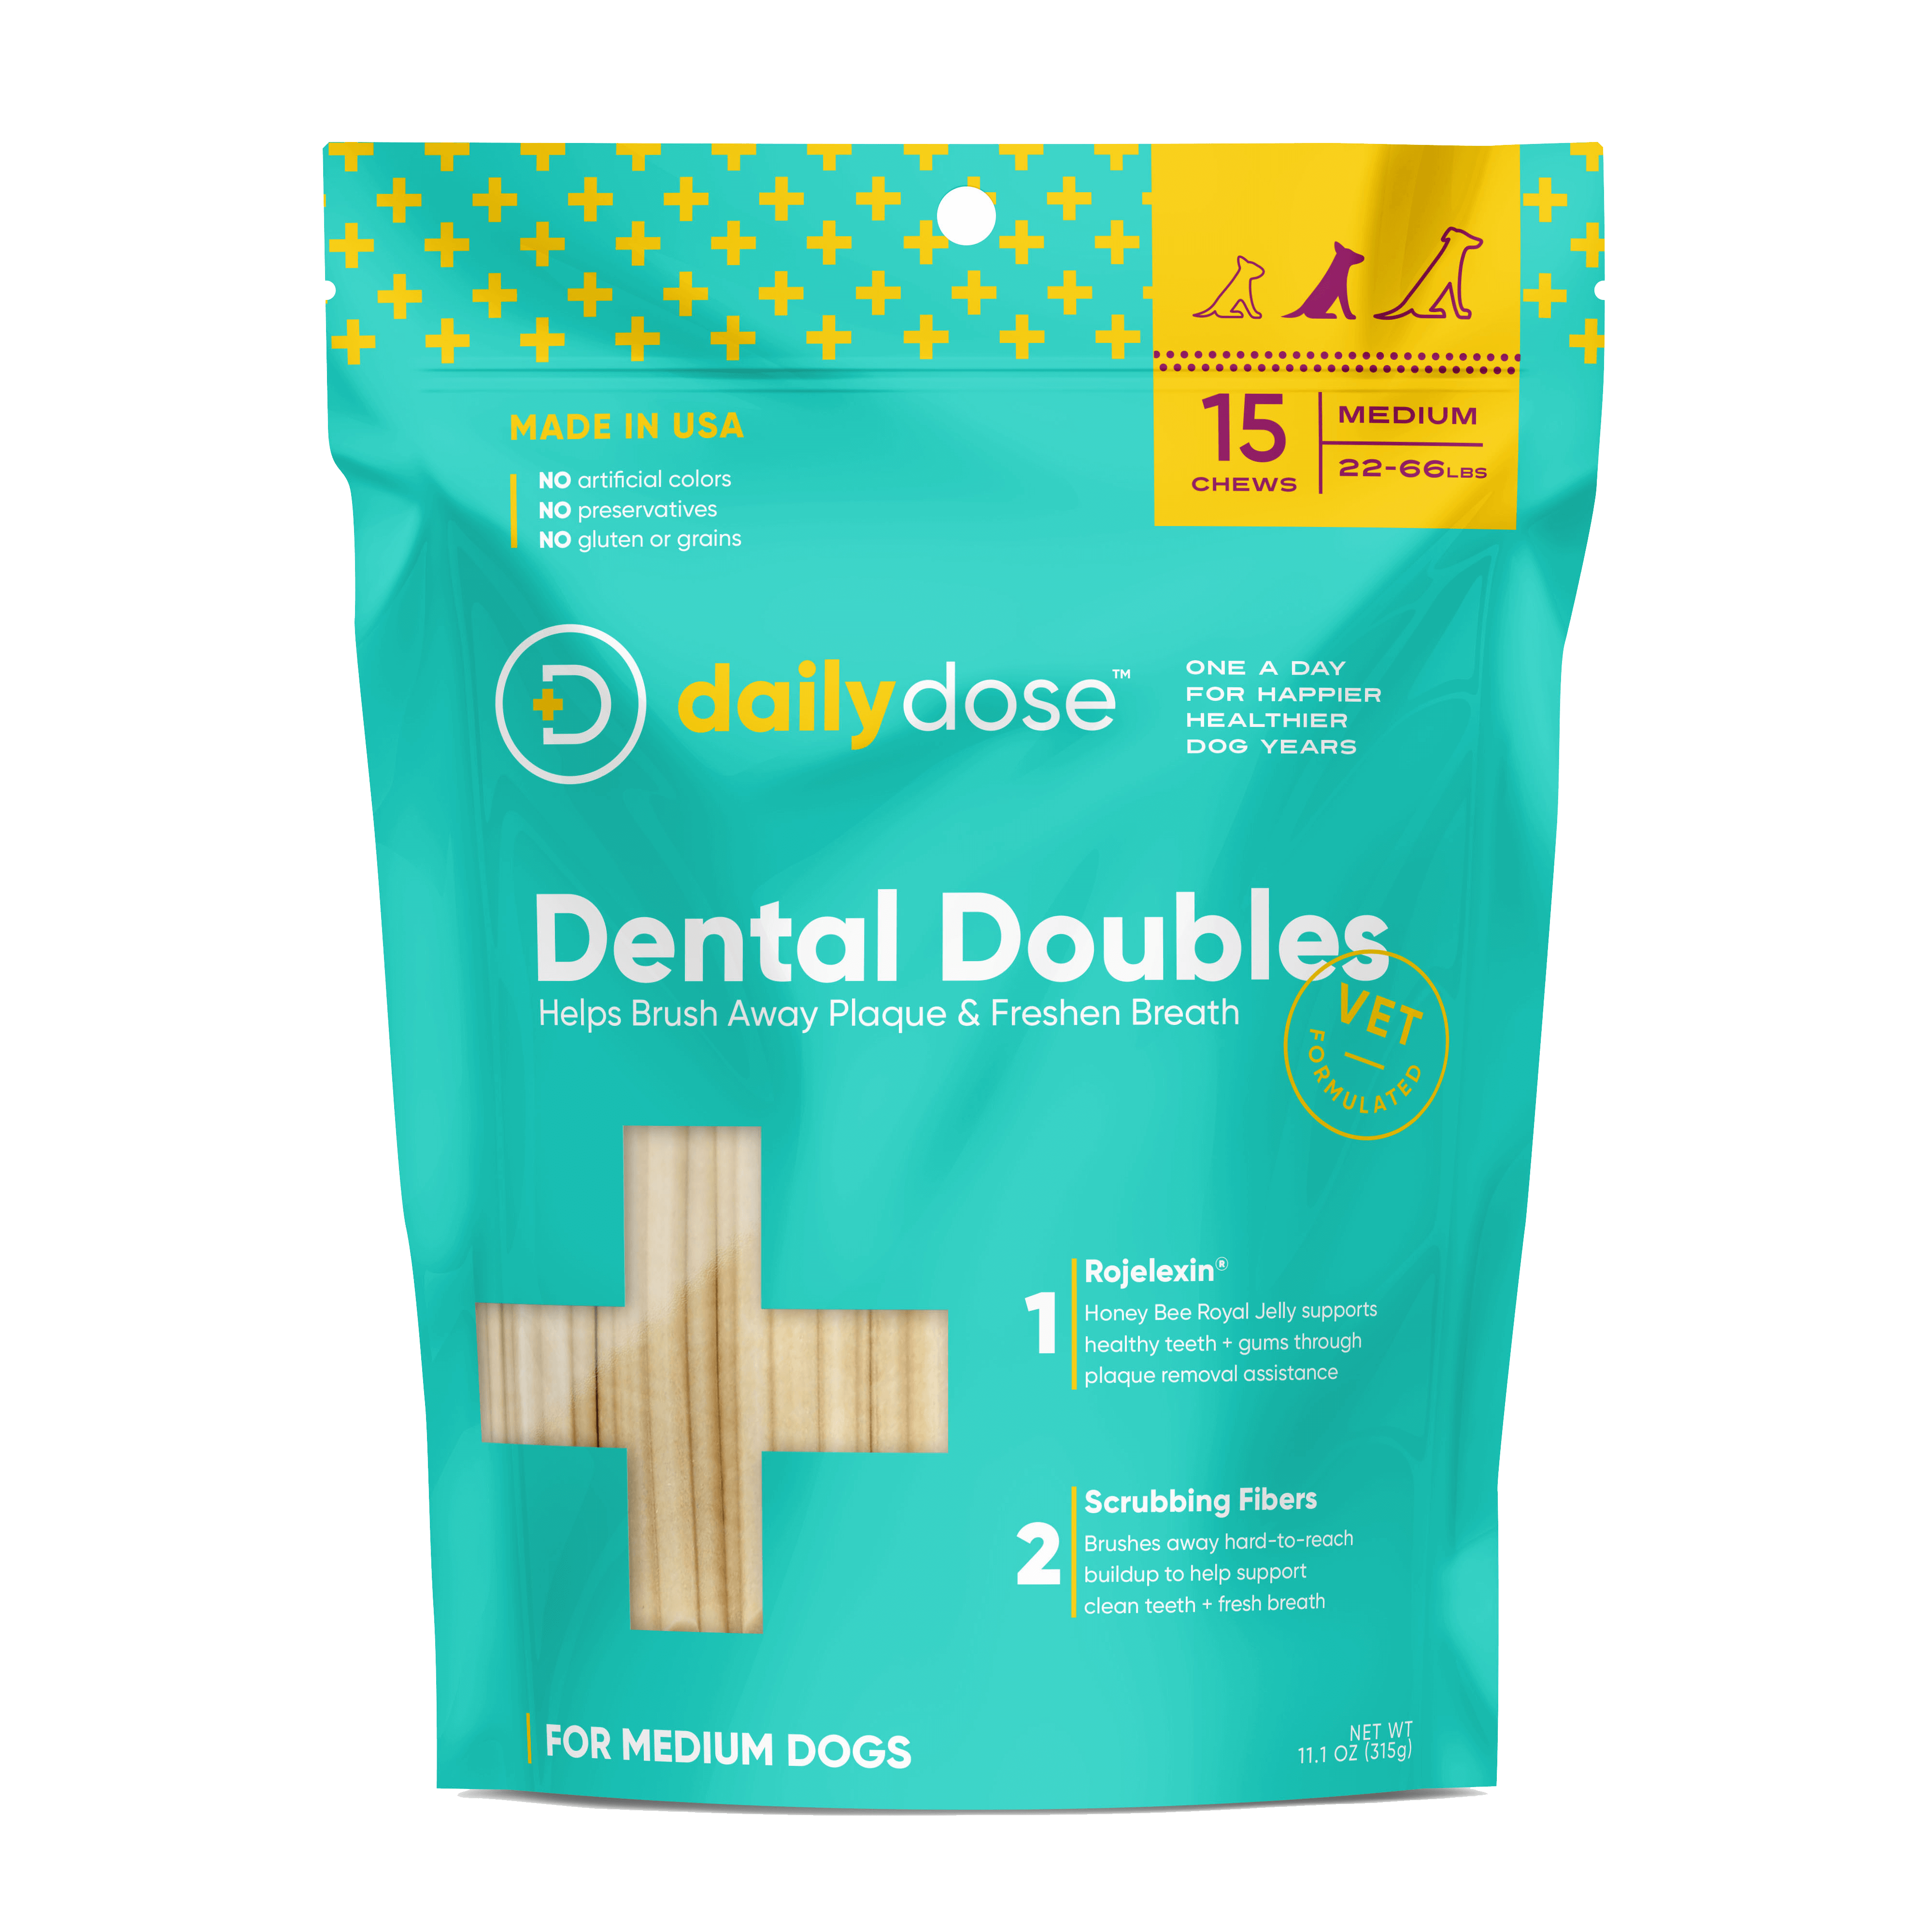 Dental Doubles